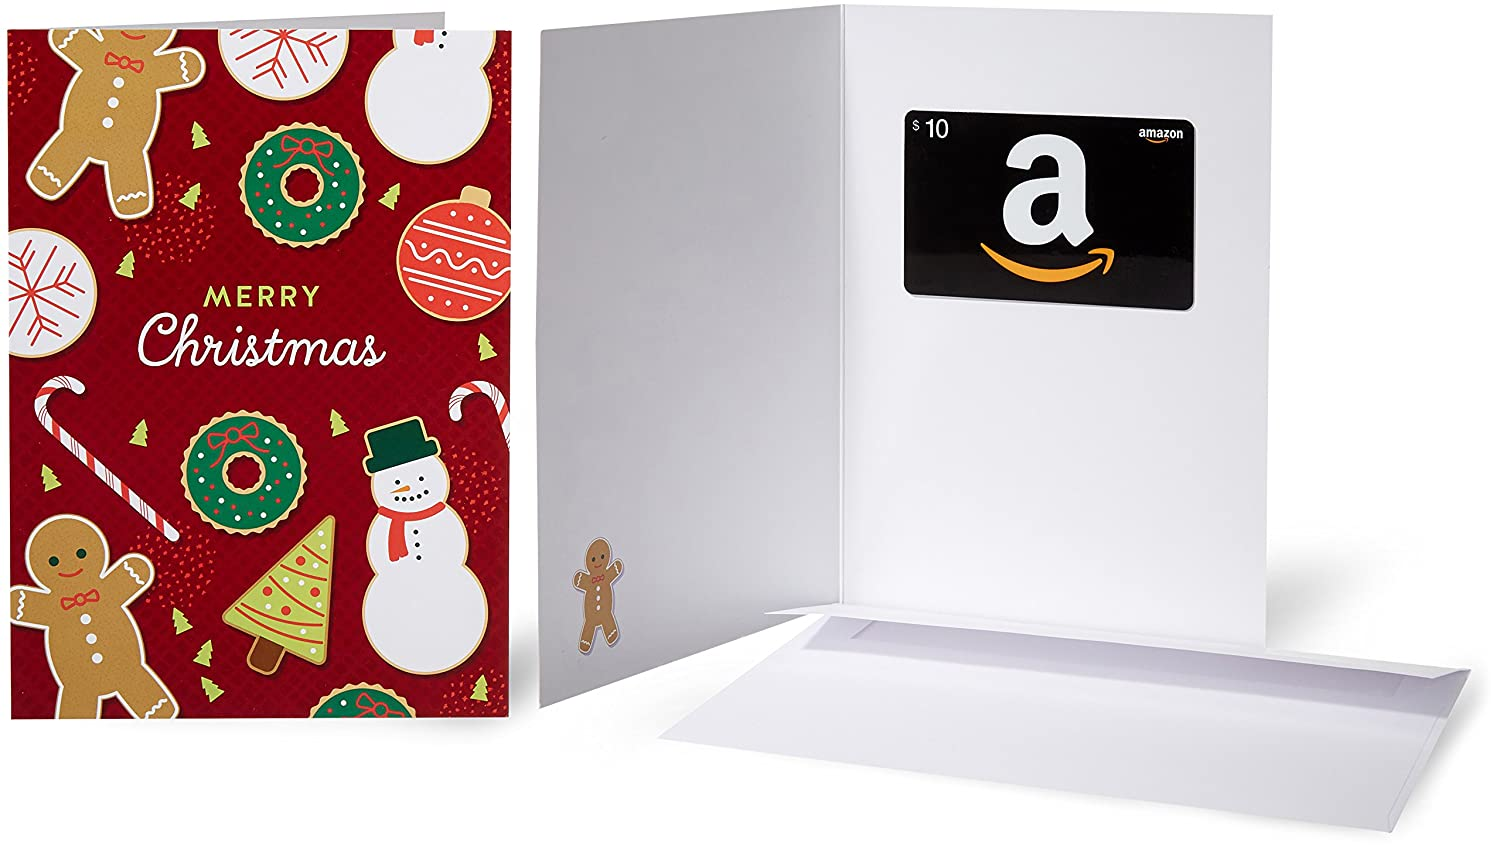 Pay outs as low as 1 for amazon gift card minimum of 10 for - Amazon Com Amazon Com 10 Gift Card In A Greeting Card Christmas Cookies Gift Cards